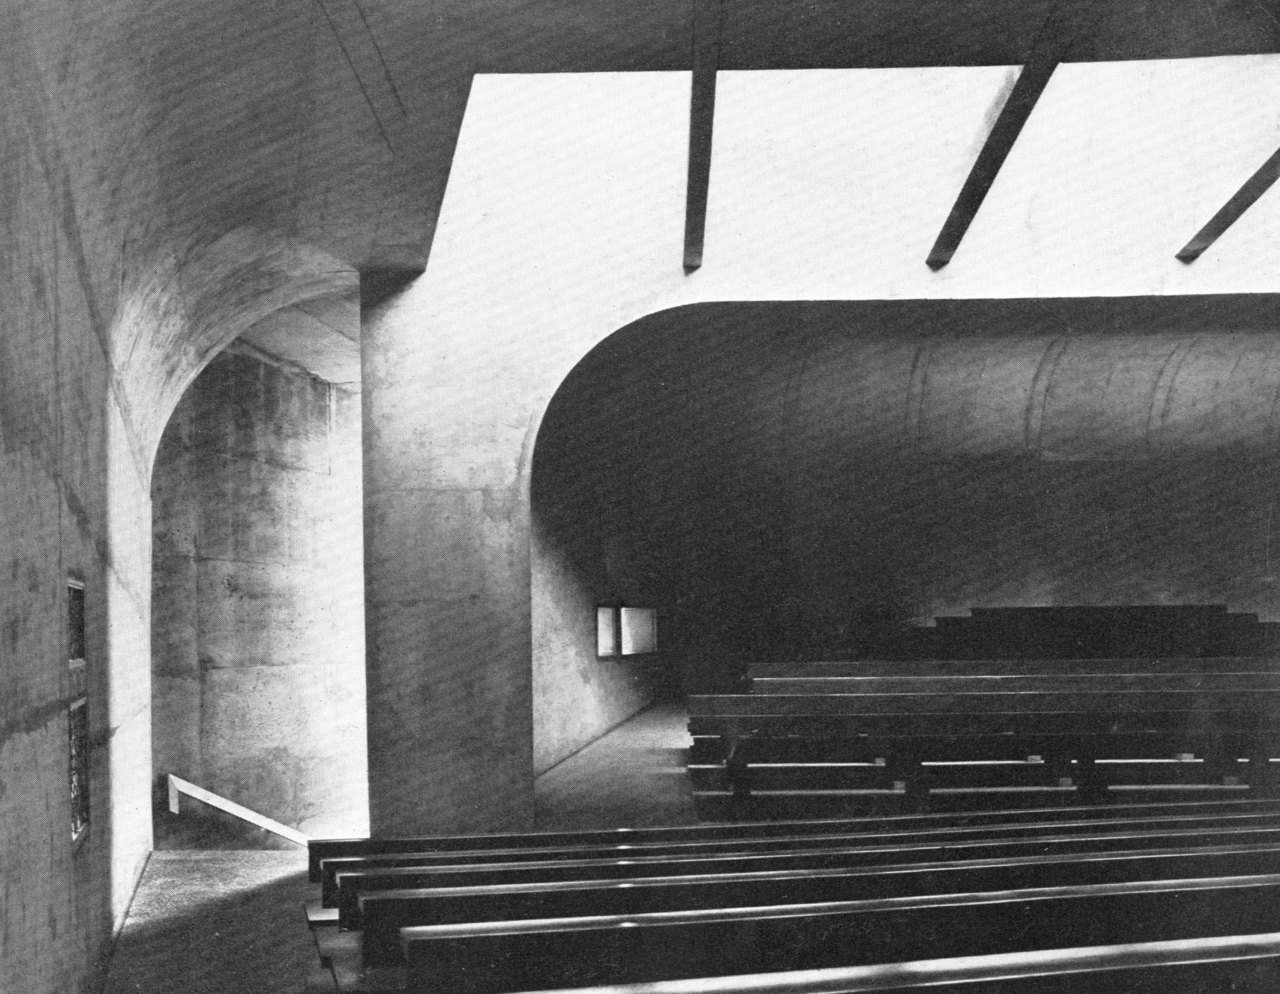 Church of St. Bernadette du Banlay, Nevers, France, 1963-66 (Claude Parent & Paul Virilio)